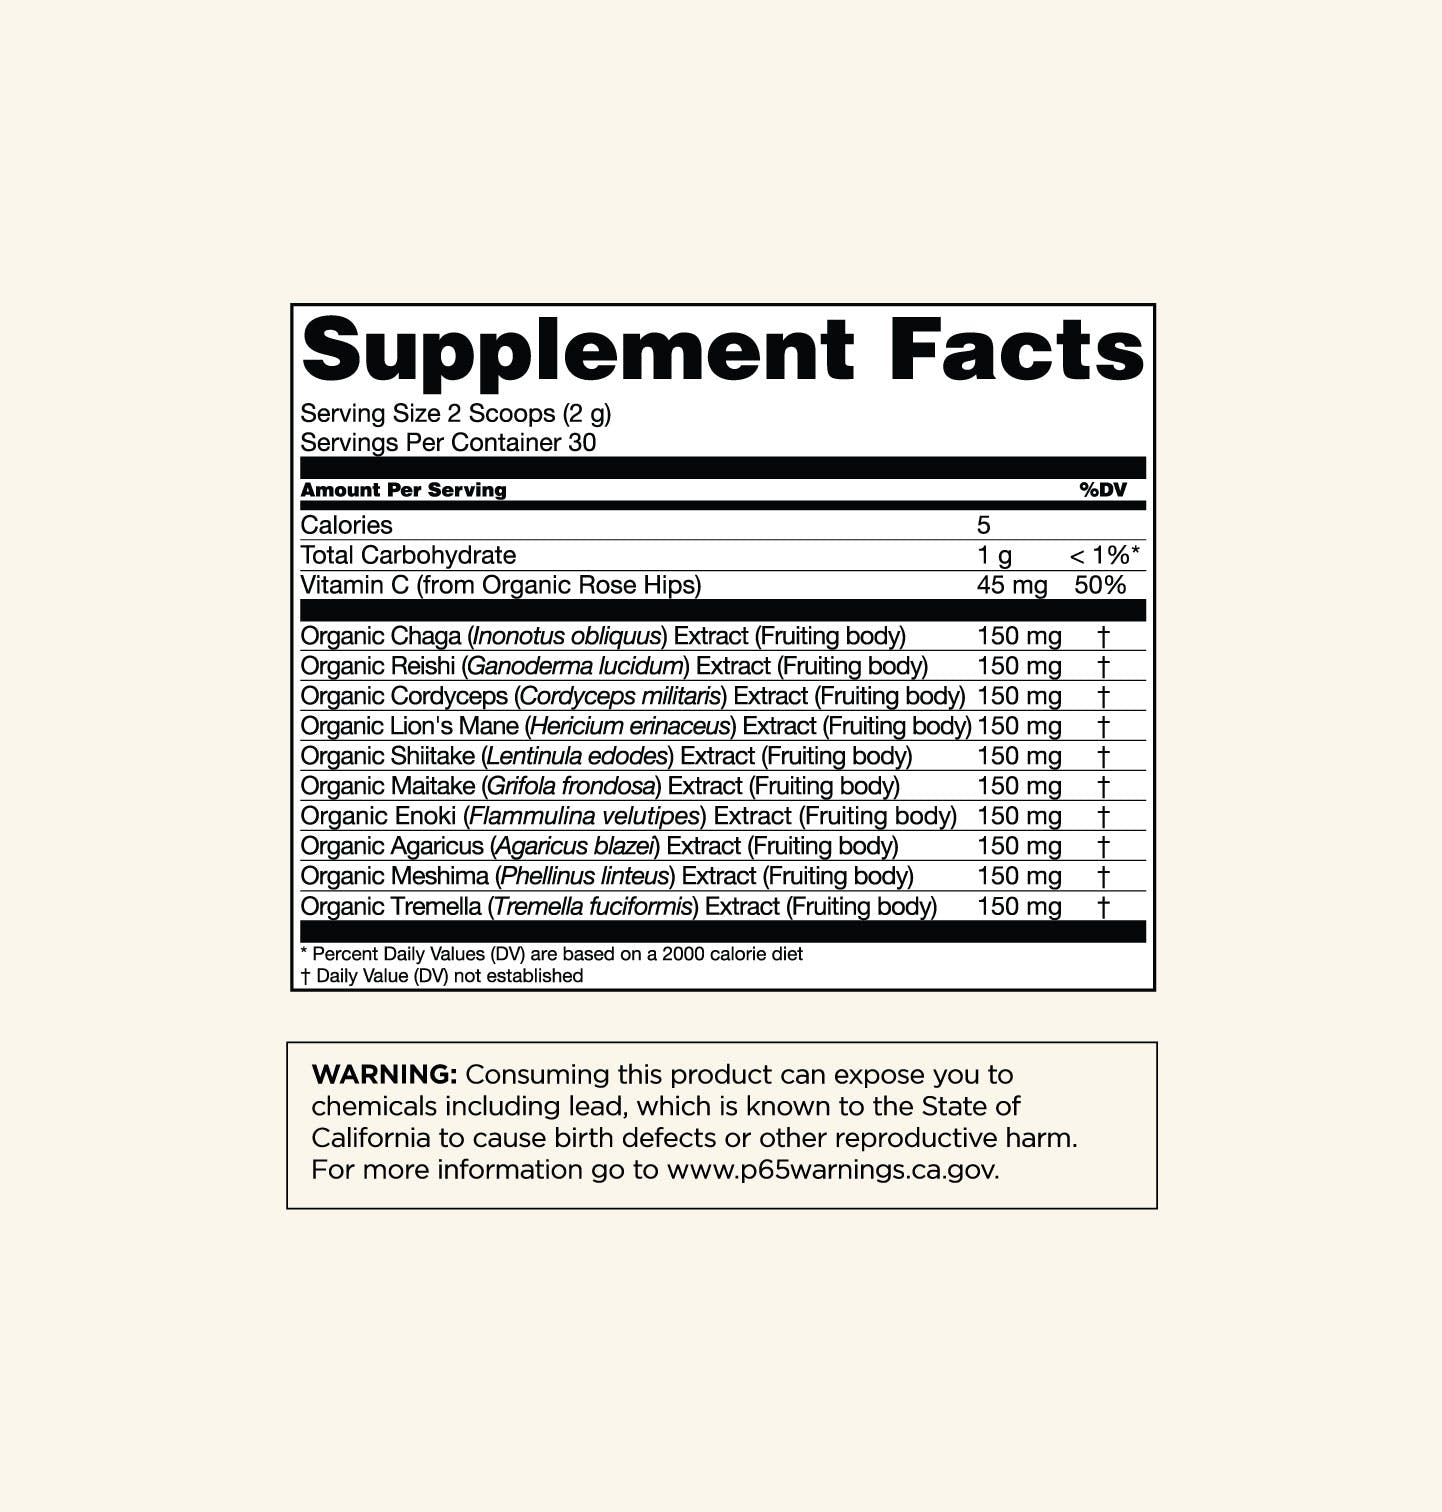 Supplement Facts Panel